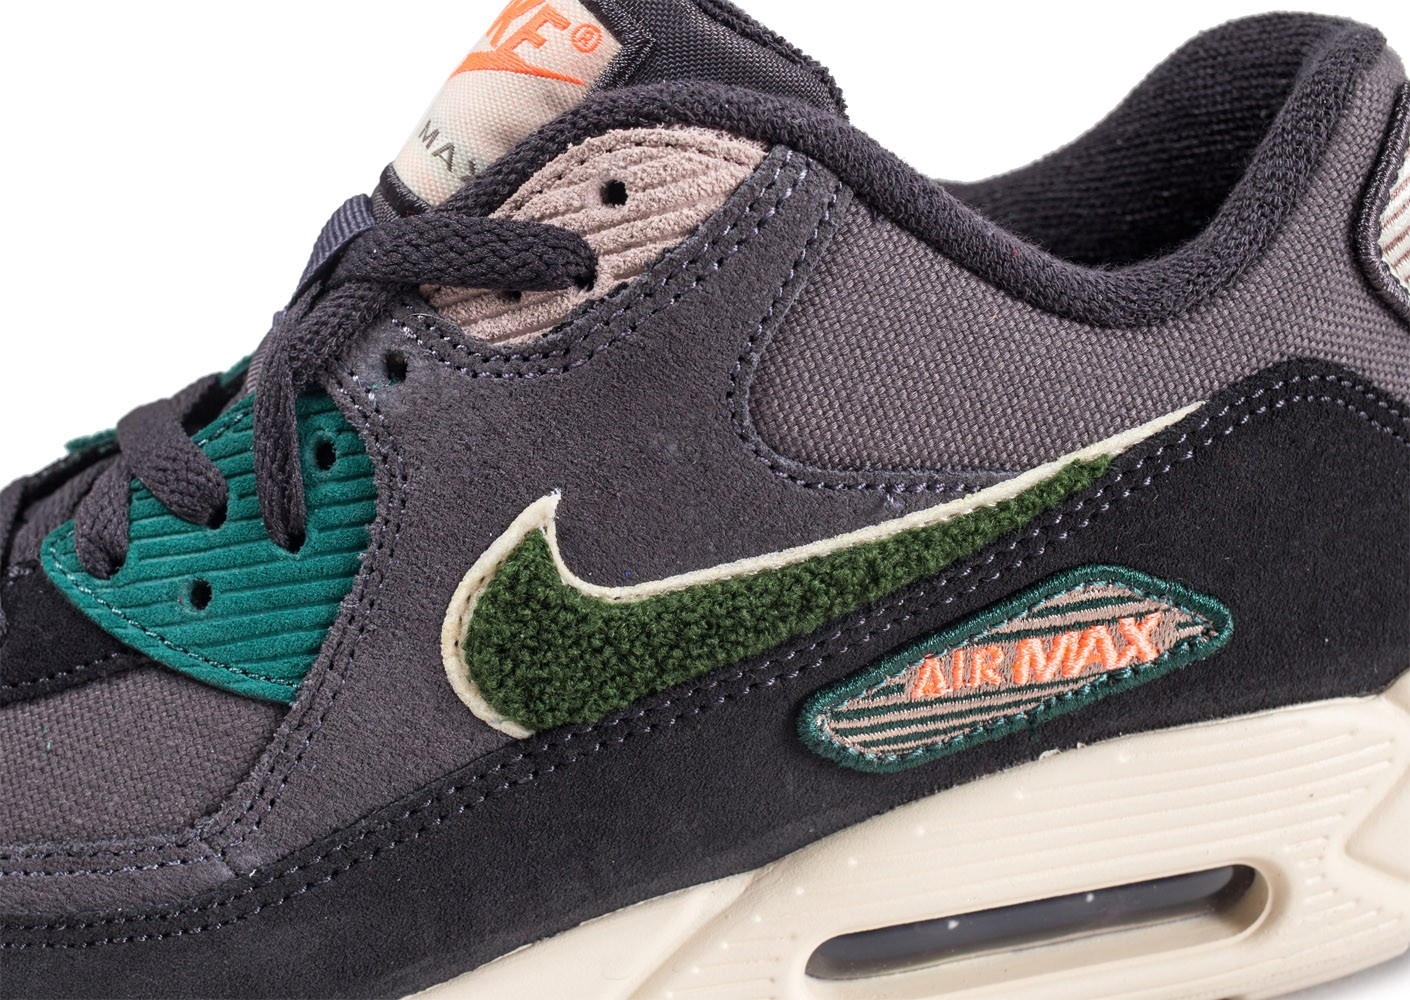 purchase cheap 75f81 d6964 ... Chaussures Nike Air Max 90 Premium SE grises vue dessus